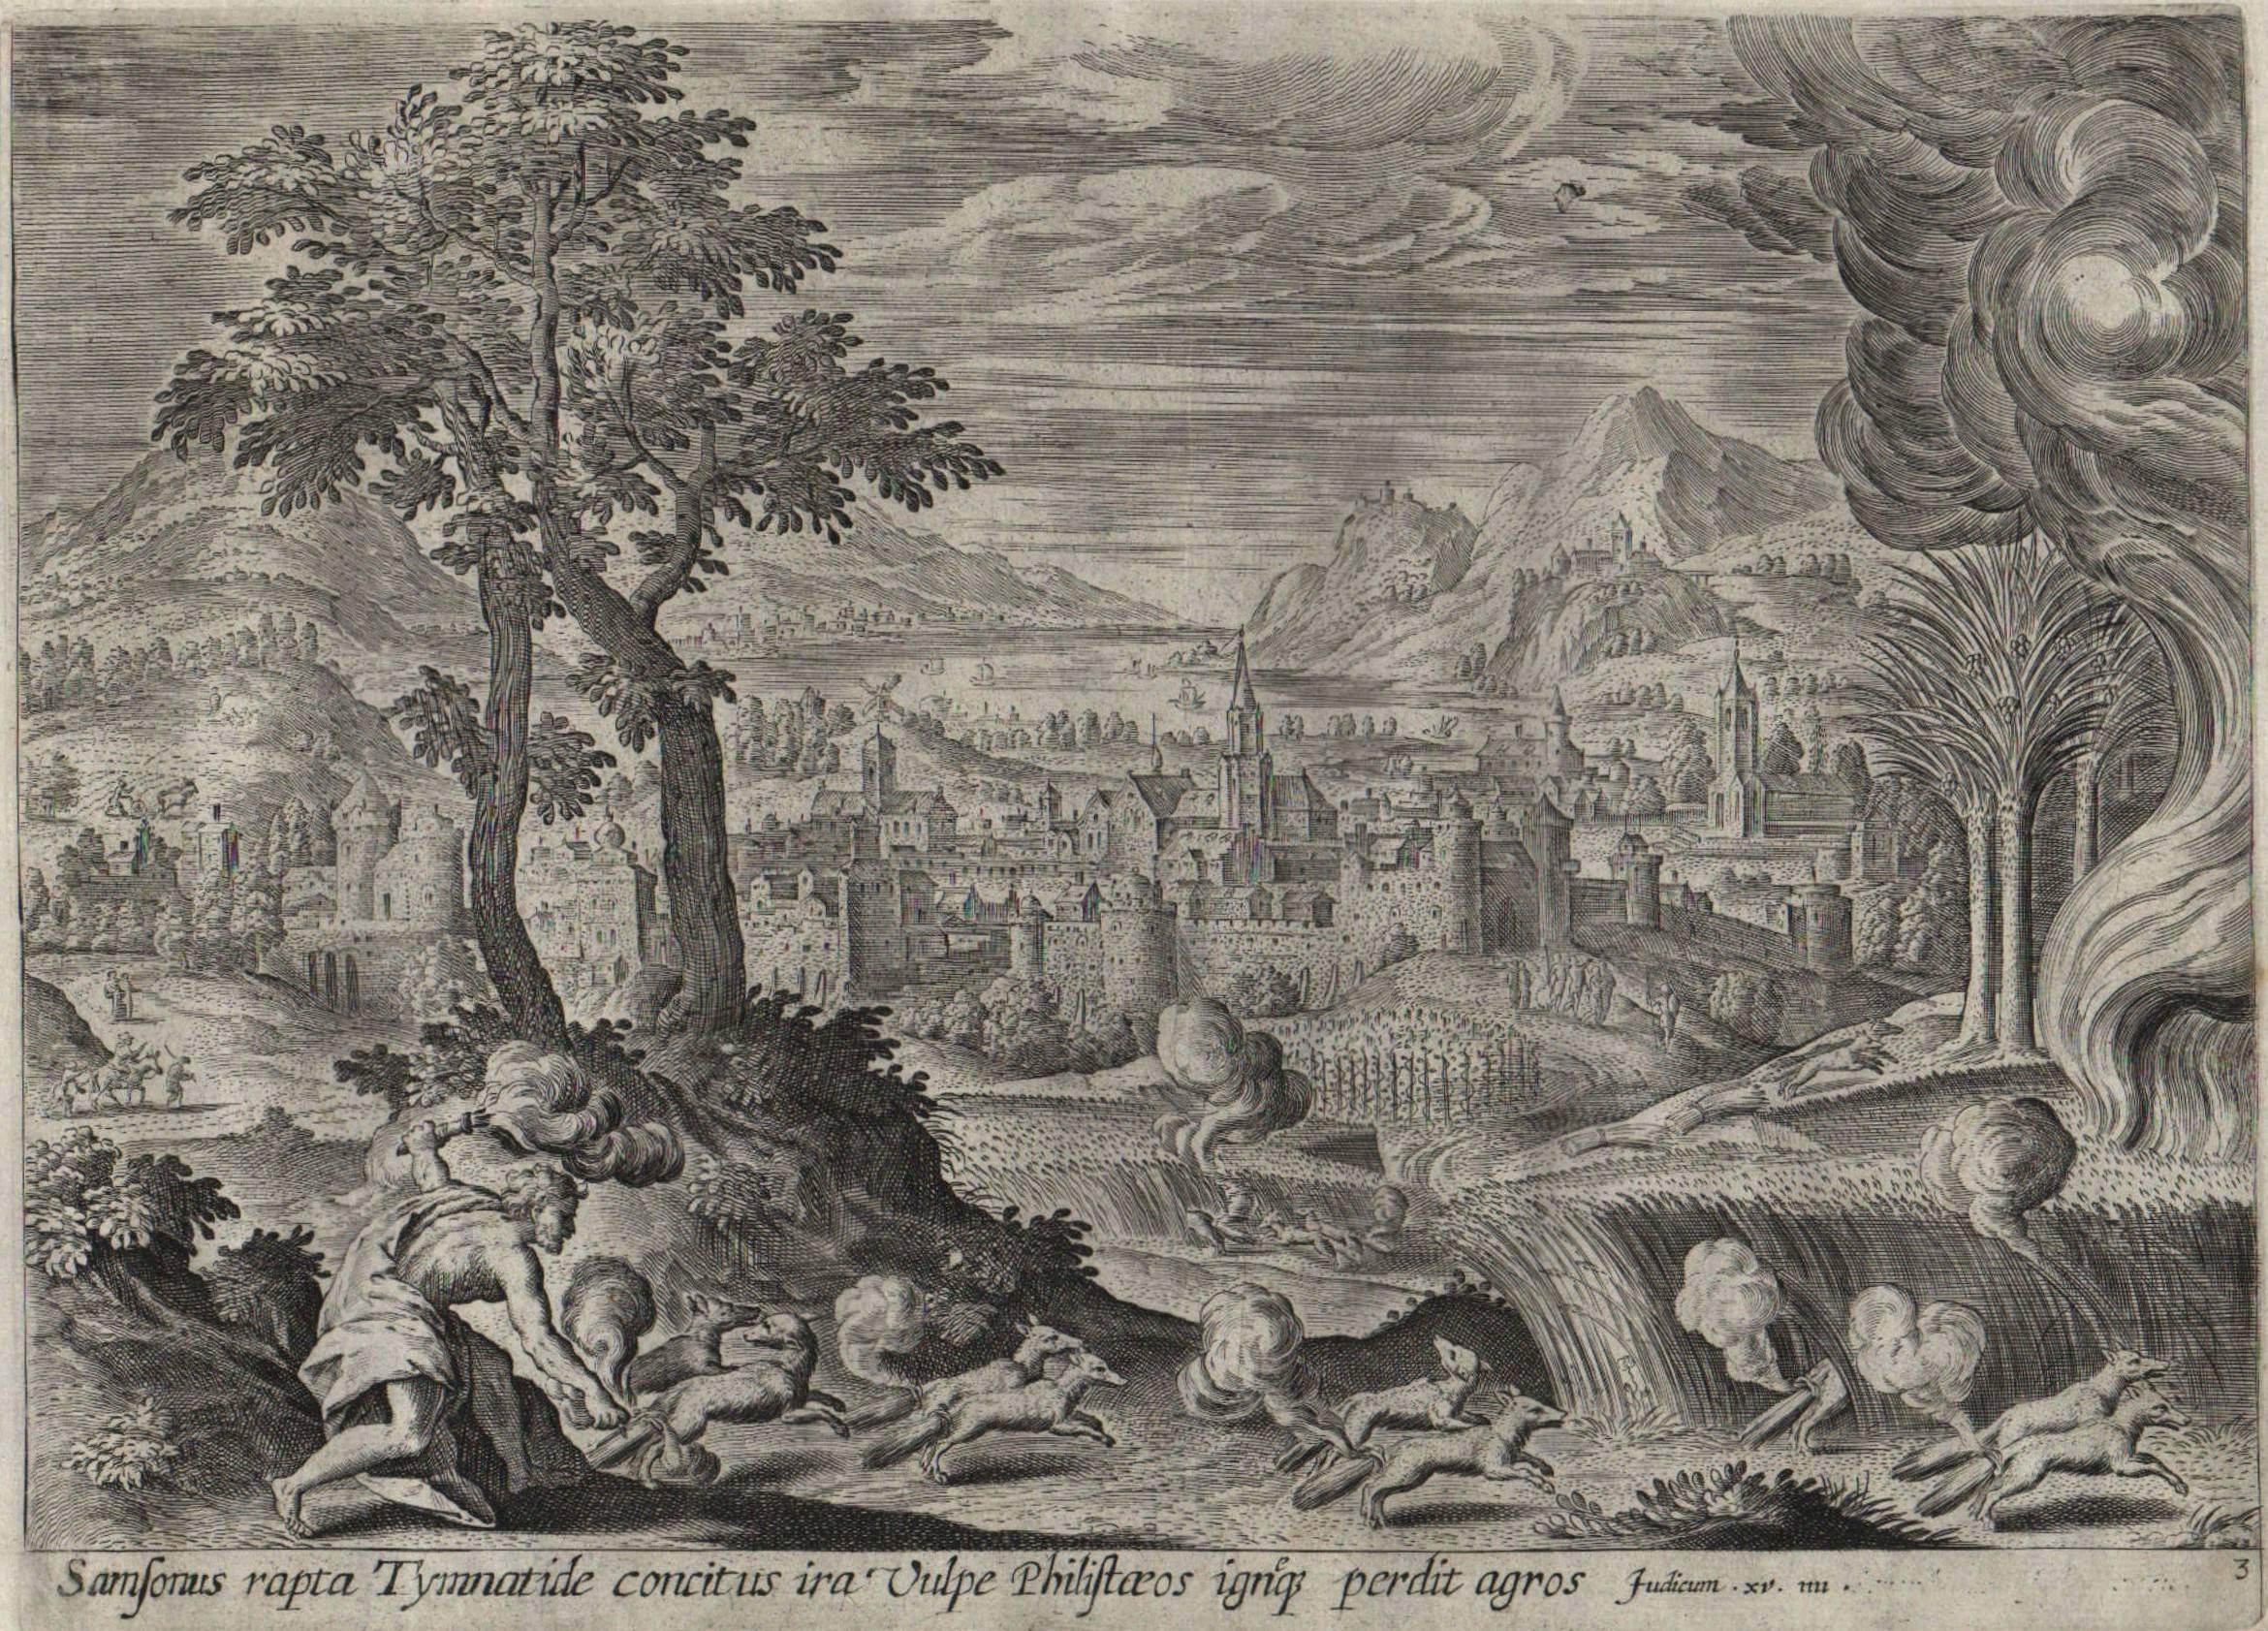 Antonius Wierix - The Story of Samson - 1643 Set of 7 Plates - Old Master  Engraving Landscape, Print For Sale at 1stdibs